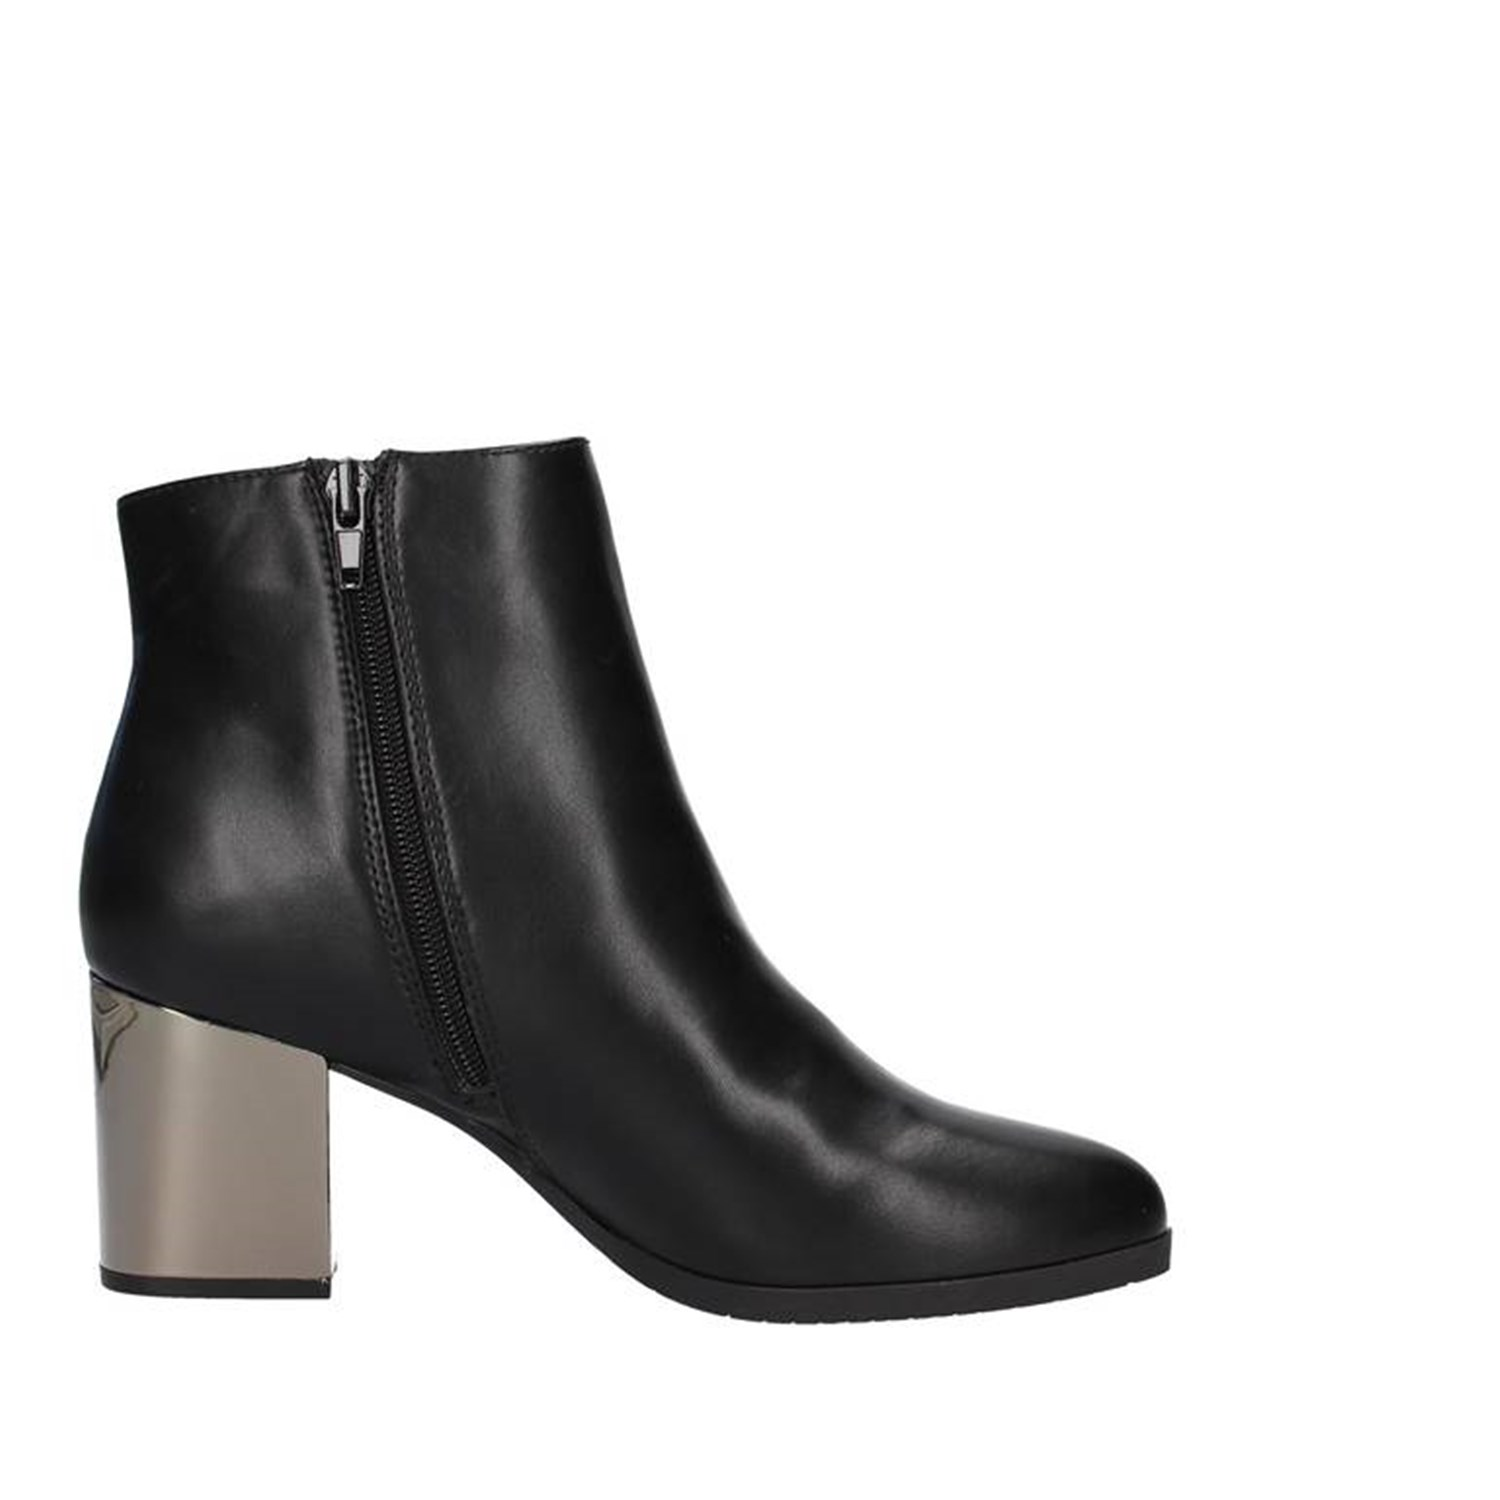 Gattinoni Roma Shoes Woman boots BLACK 0760WCA